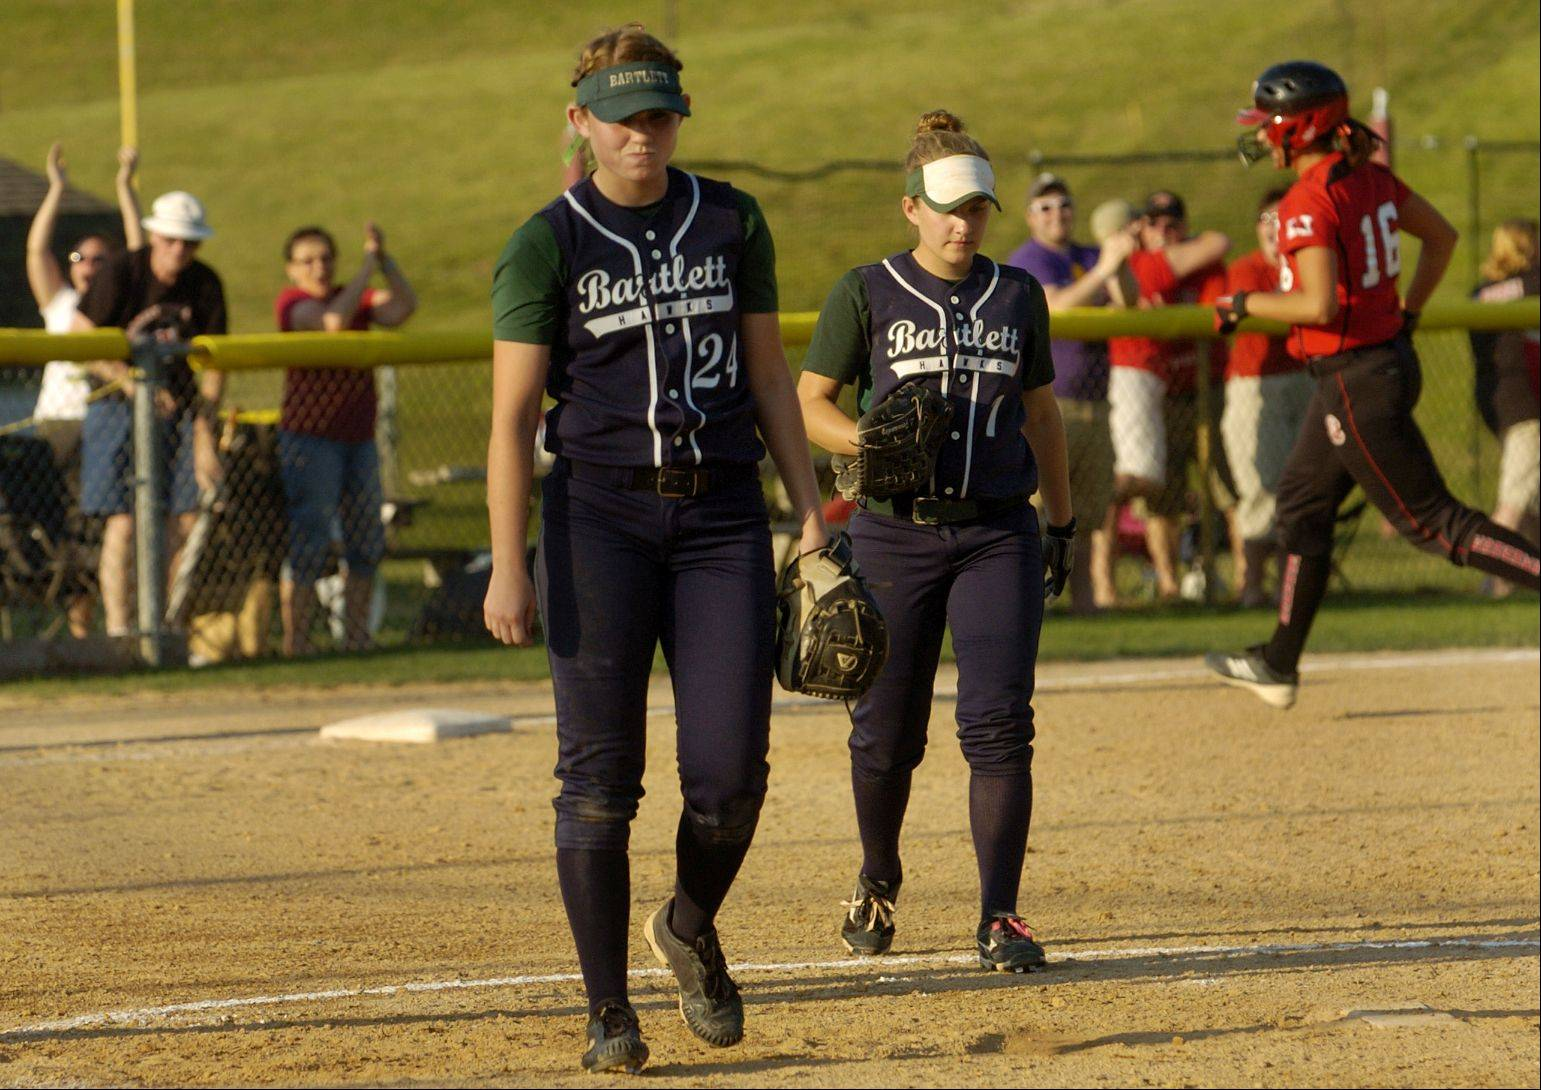 Marist's Haley Richy circles the bases, far right, behind a dejected Tori Burke, after hitting a grand slam in the 5th inning during Class 4A state softball championship game .